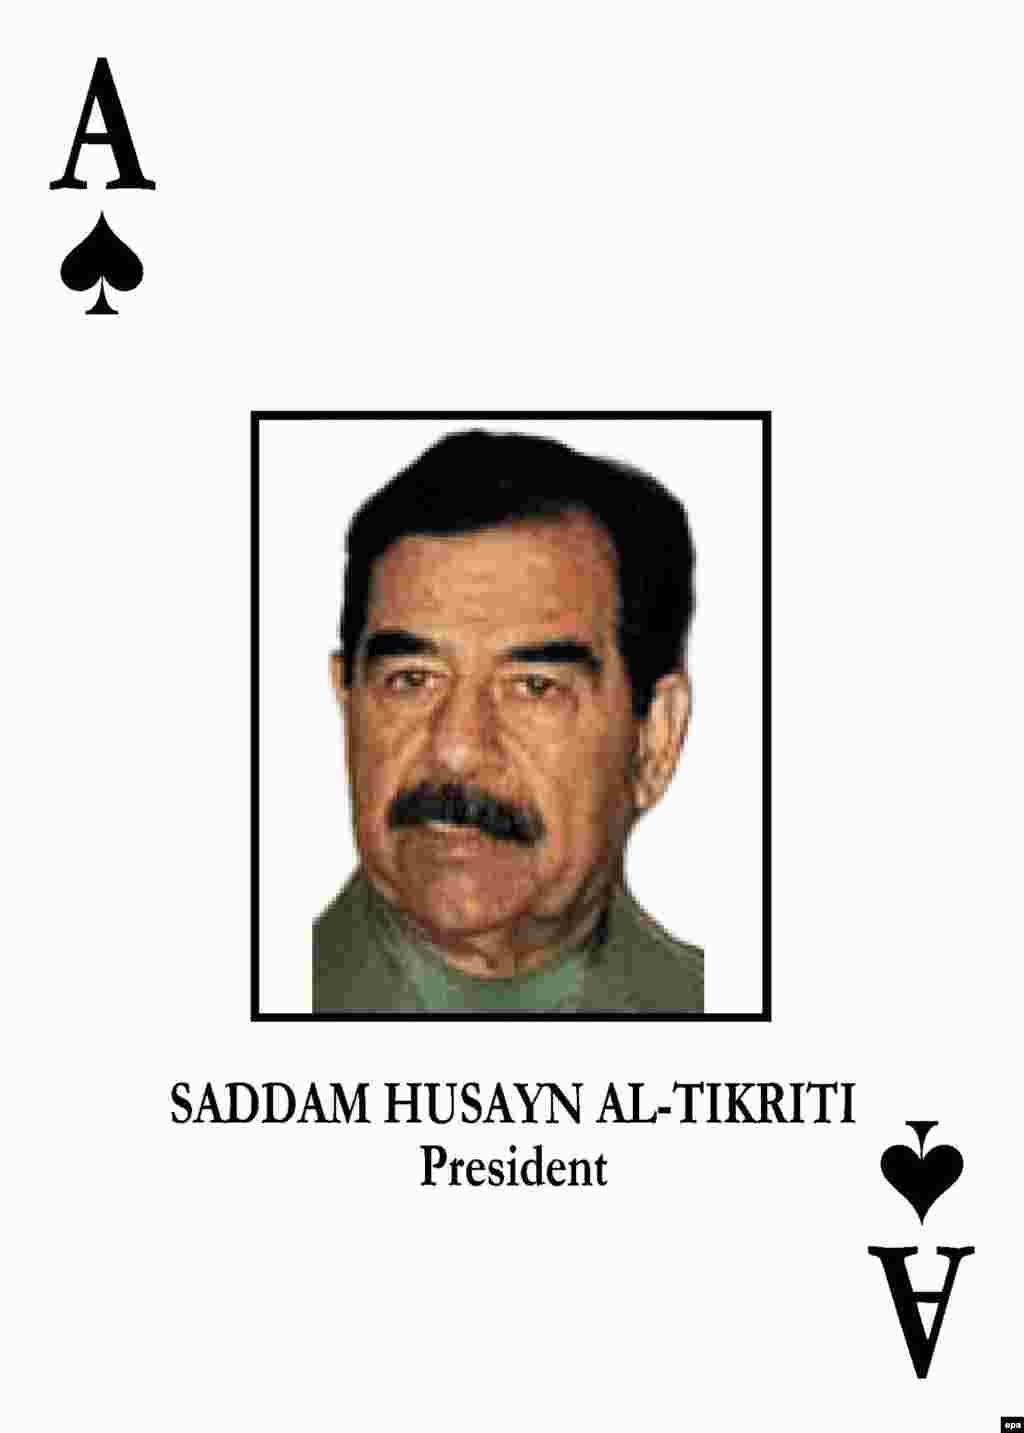 The ace of spades. In 2003 Saddam Hussein was the top target in a deck of playing cards given to U.S. forces to help them identify him and other senior Iraqi officials after the invasion.